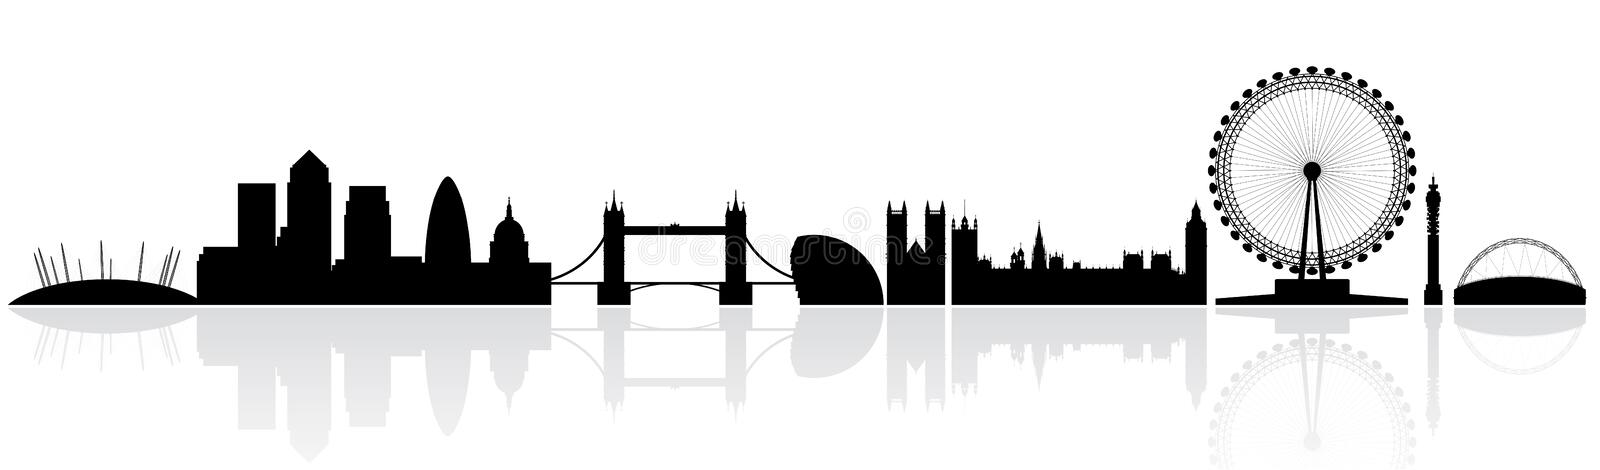 Download London skyline silhouette stock vector. Image of metropolis - 7217885